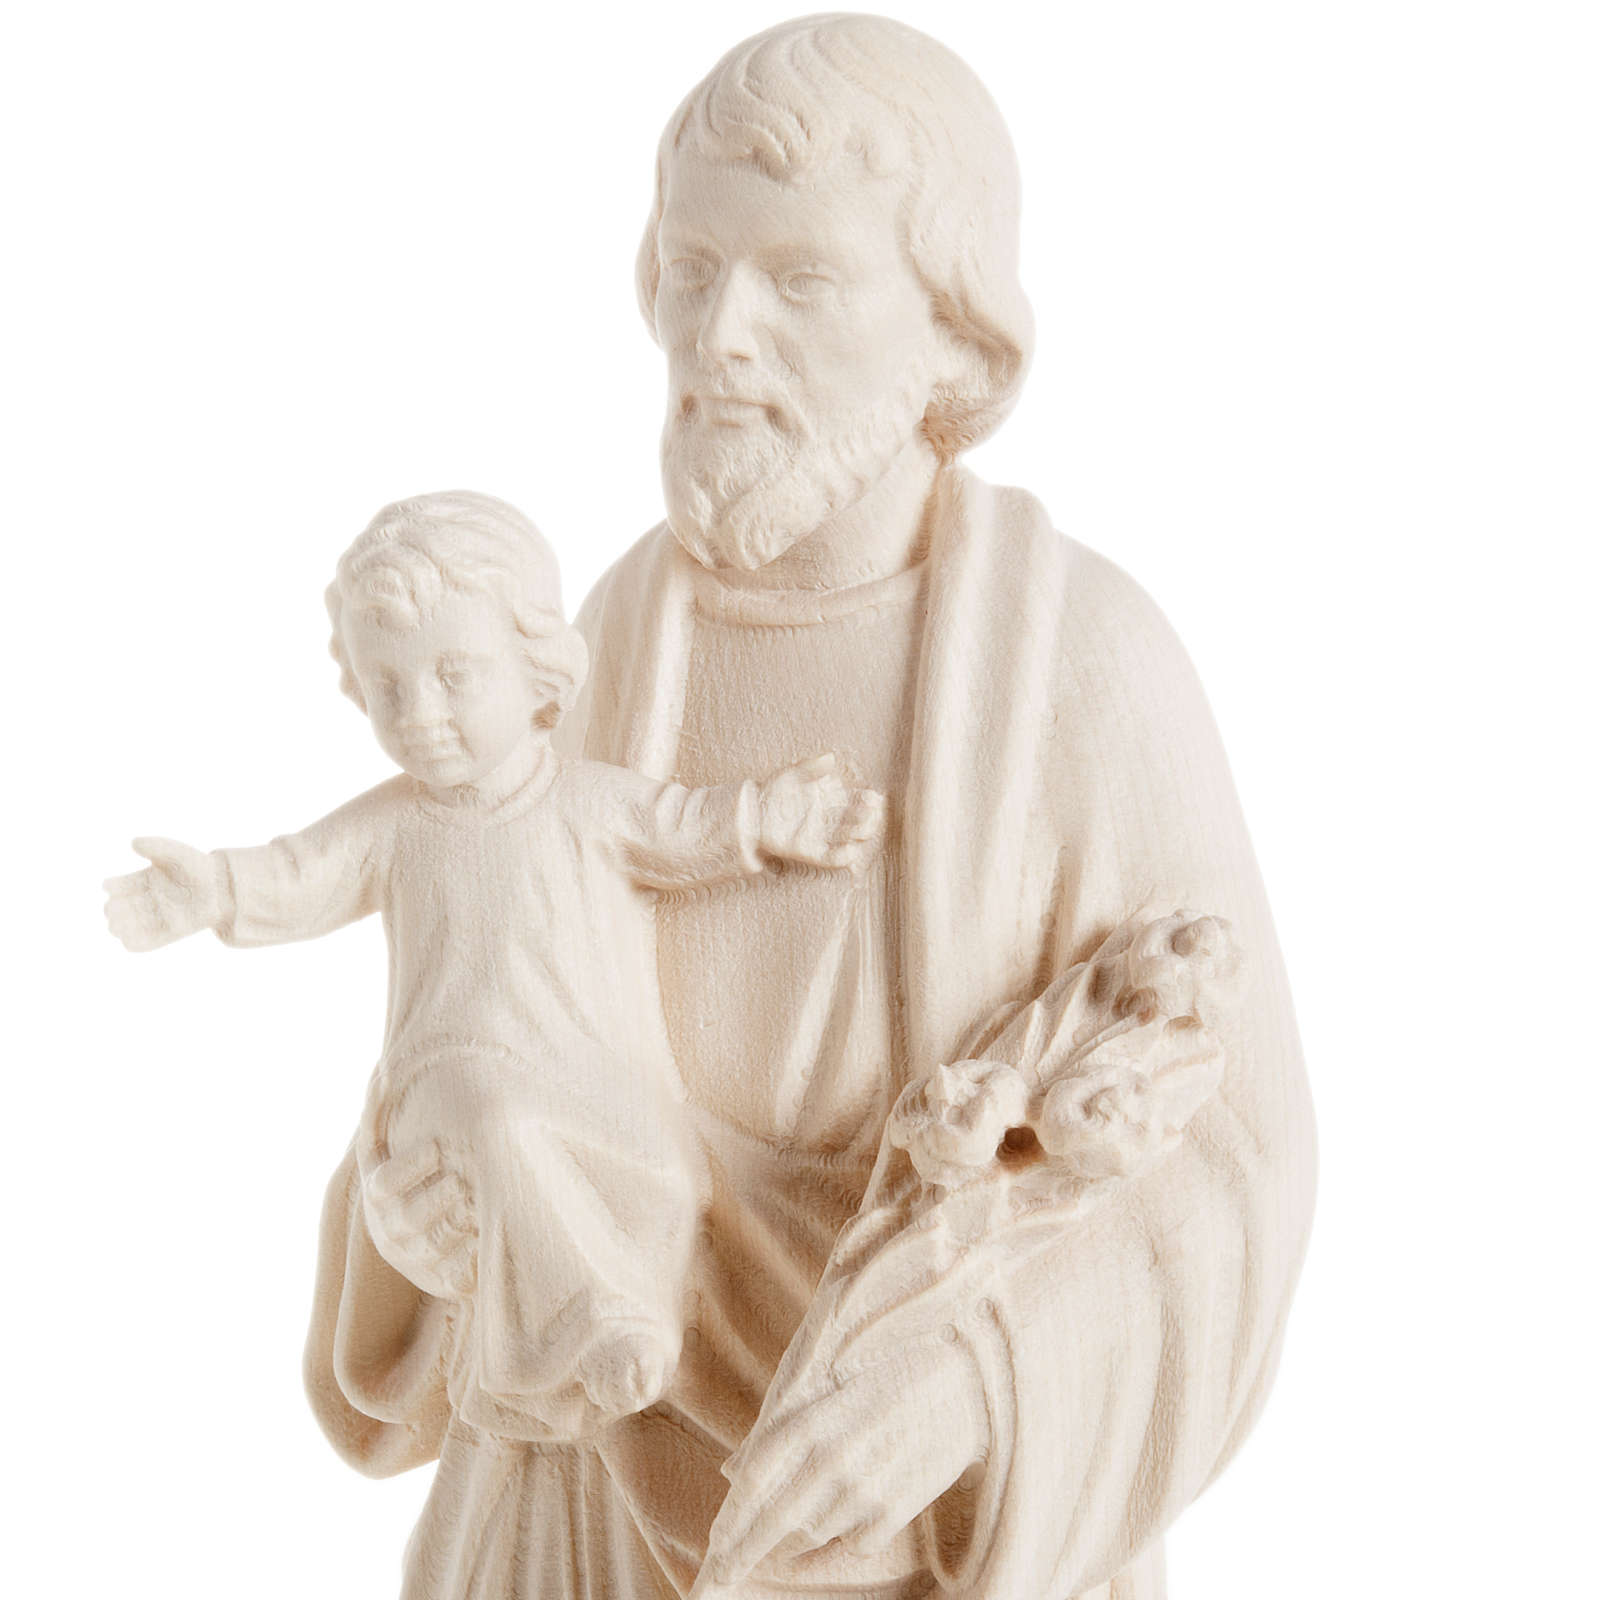 Saint Joseph with the Baby and the Lily 4